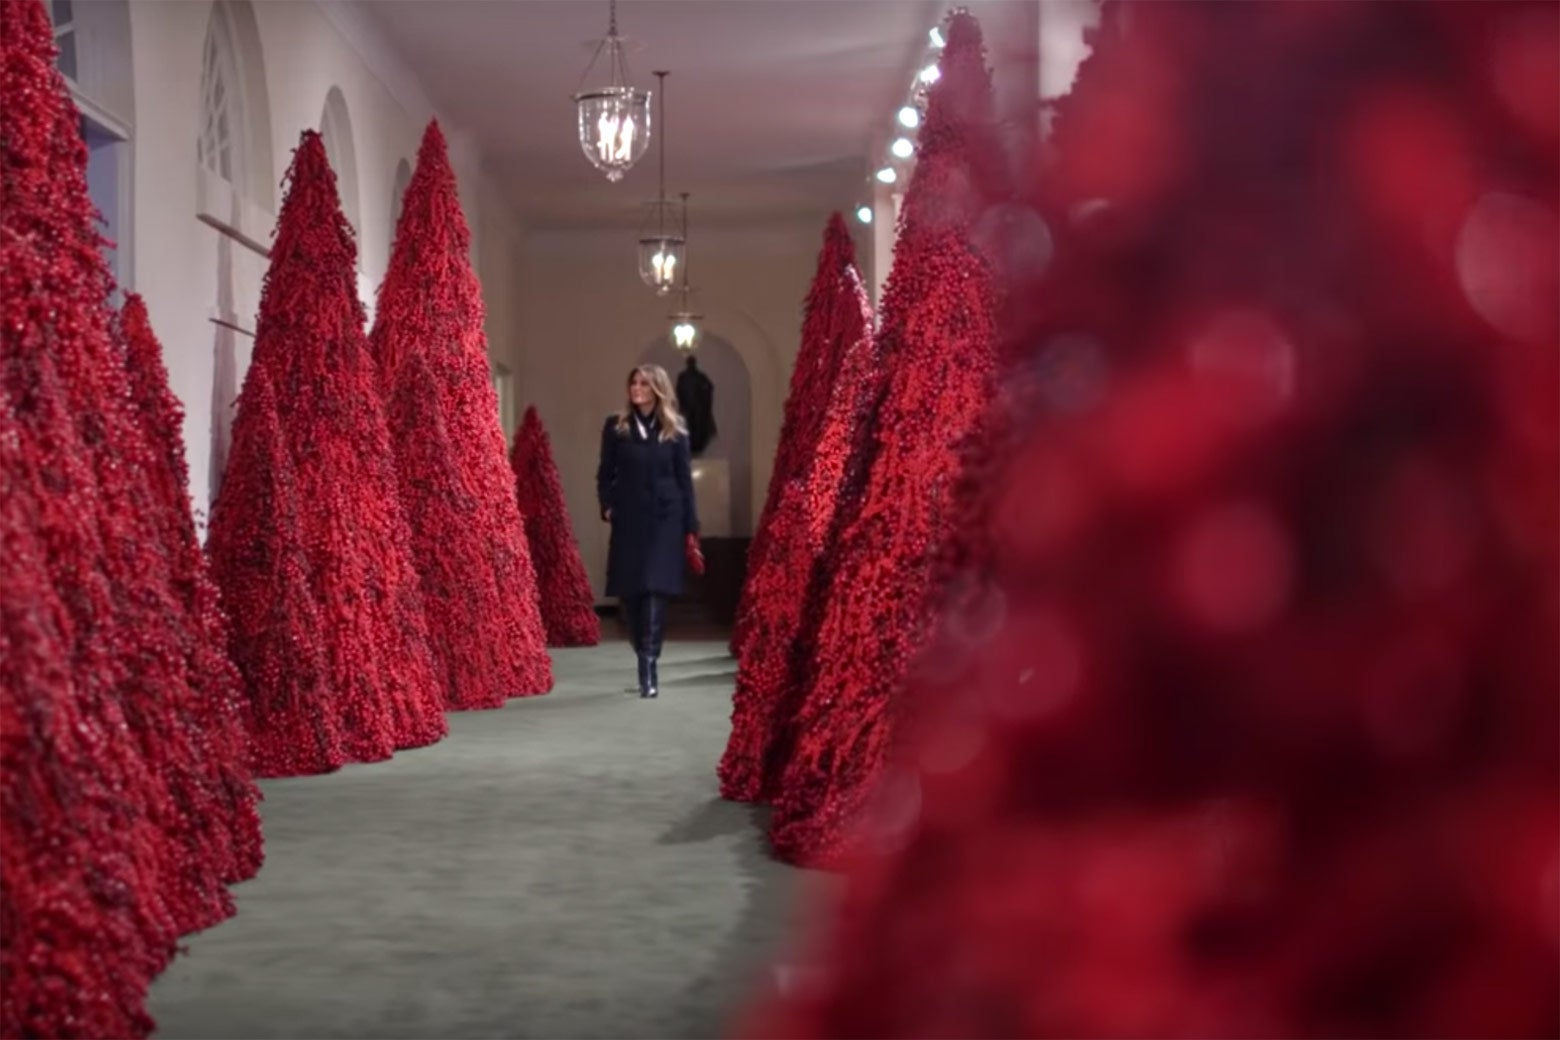 Melania Trump walks down a hallway lined with giant red textured cones.